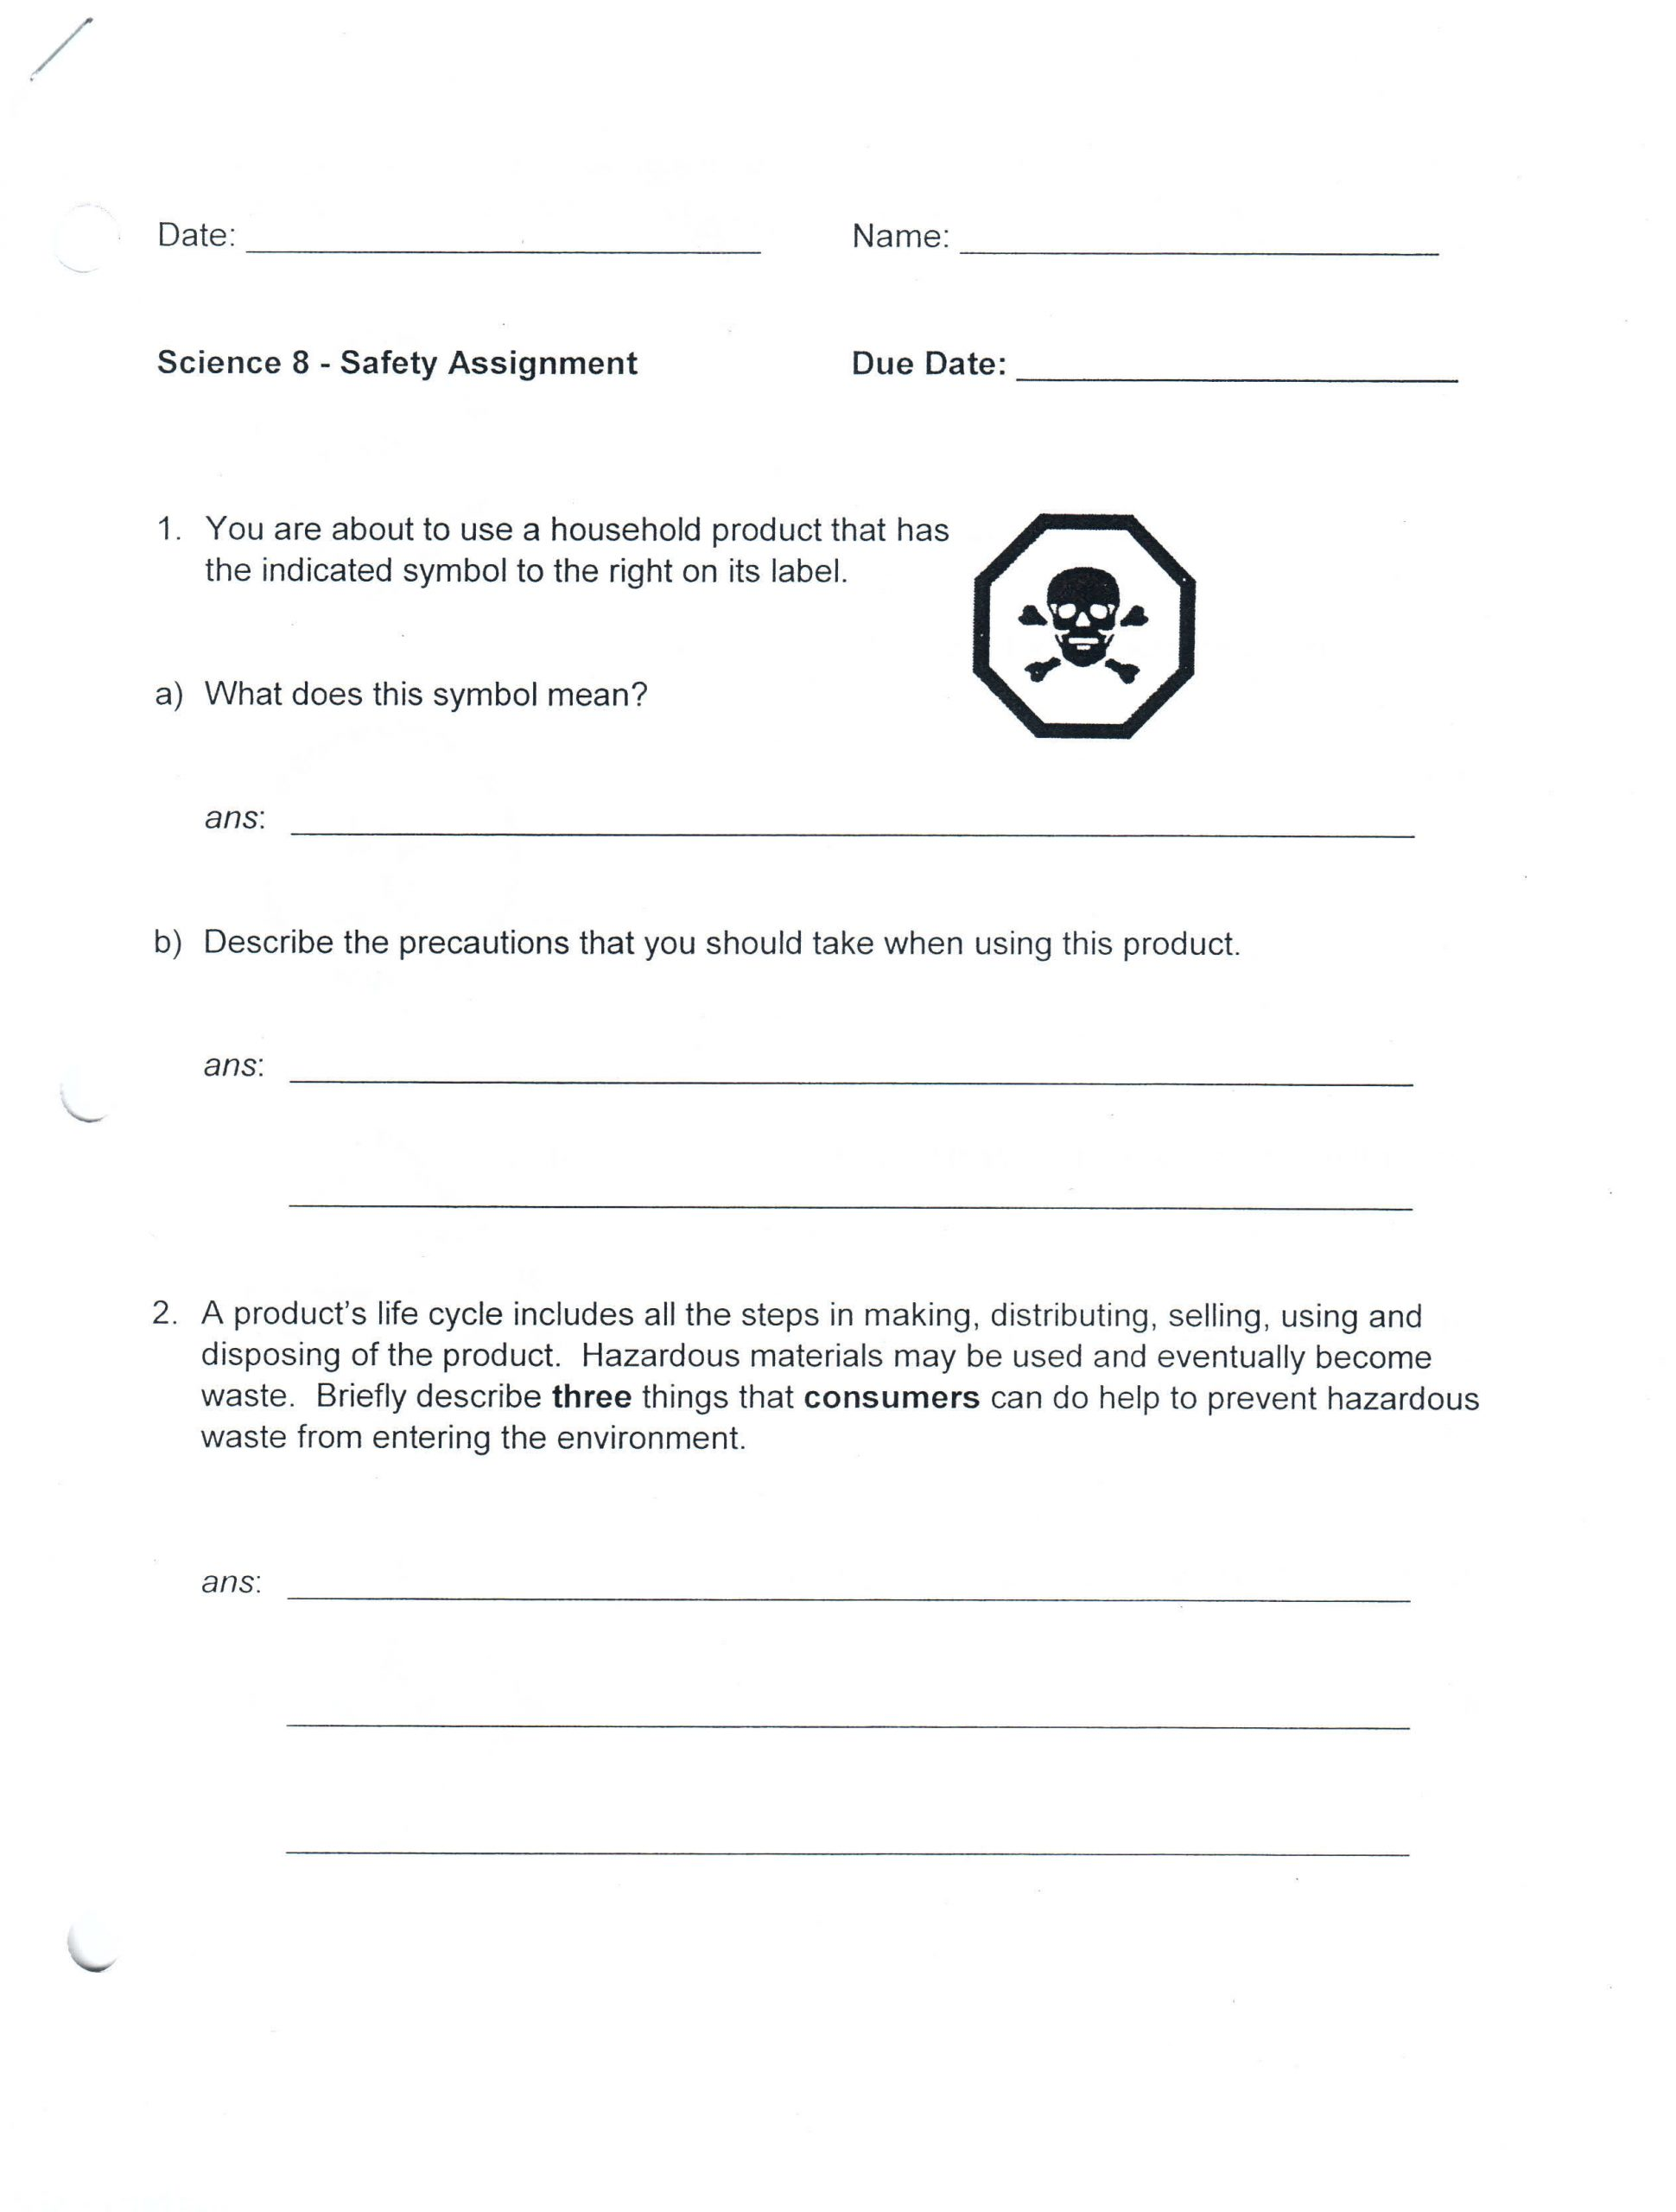 Lab Safety Symbols Worksheet Science 8 Mara Benson S Courses